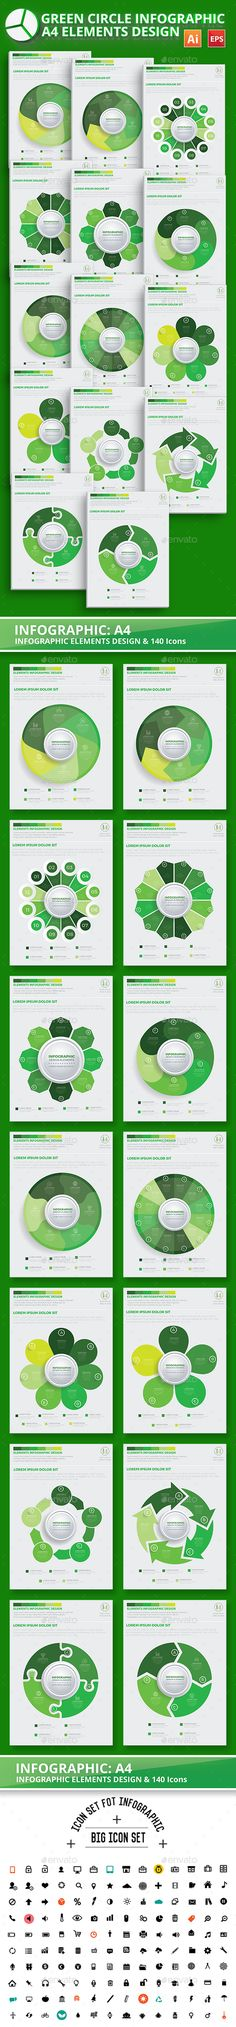 Green Circle Infographic Design Template Vector EPS, AI. Download here: http://graphicriver.net/item/green-circle-infographic-design/15898396?ref=ksioks